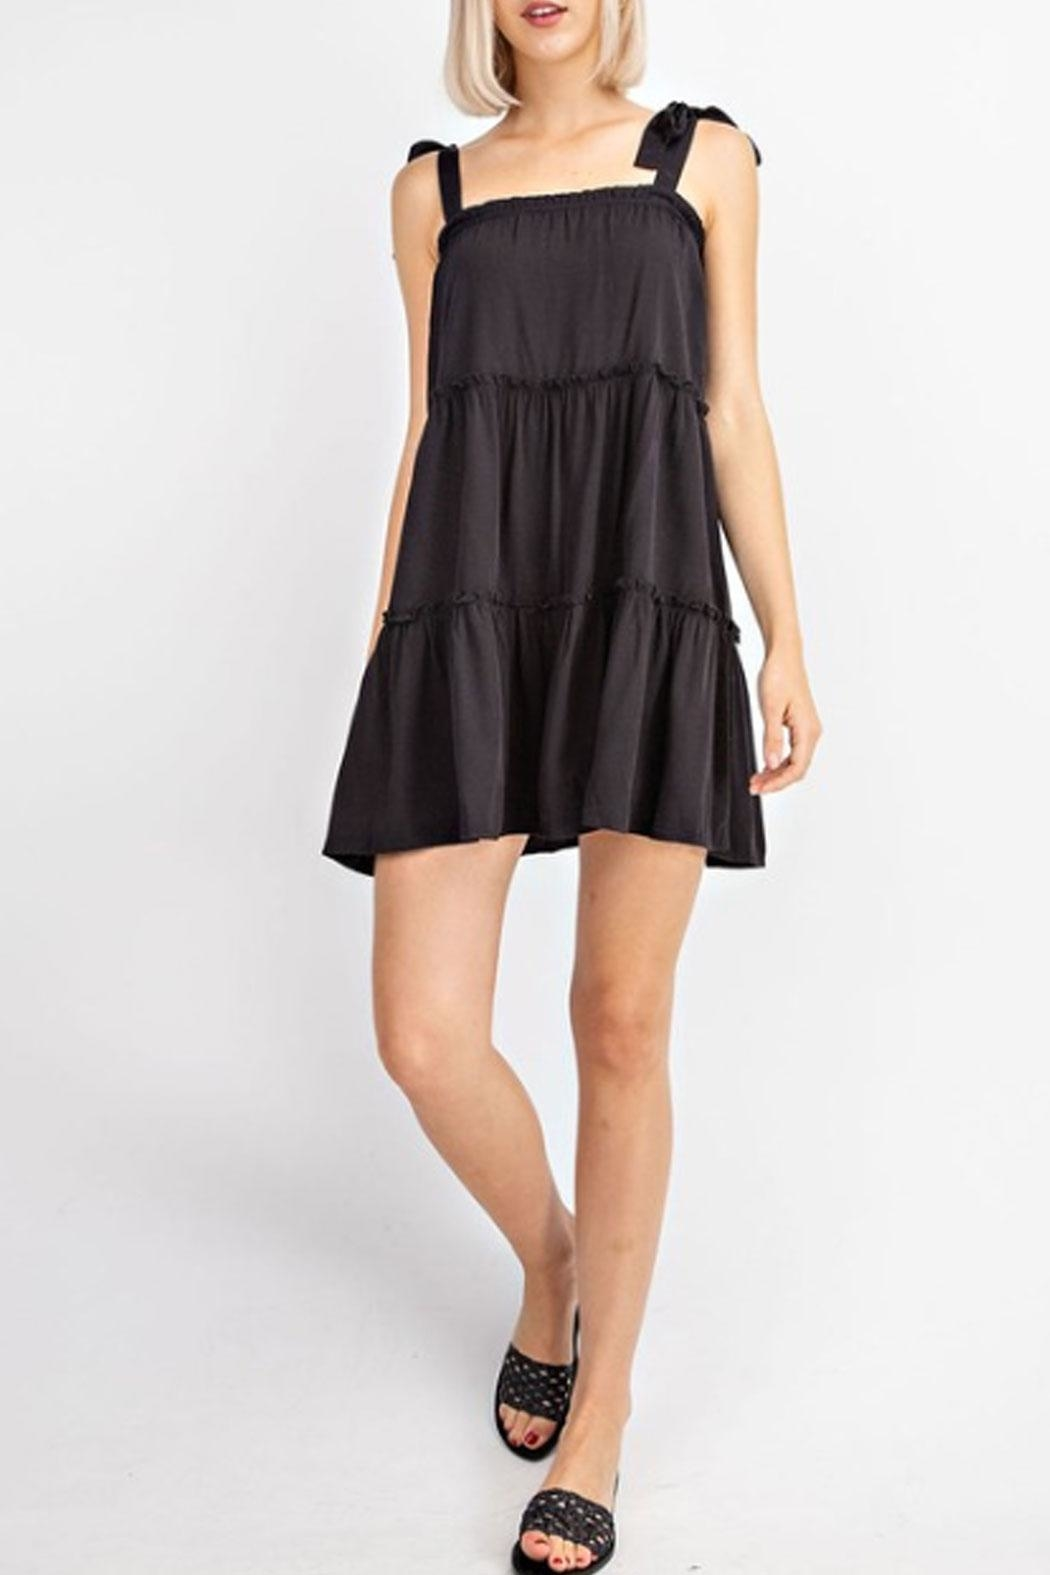 Le Lis Tiered Black Dress - Side Cropped Image